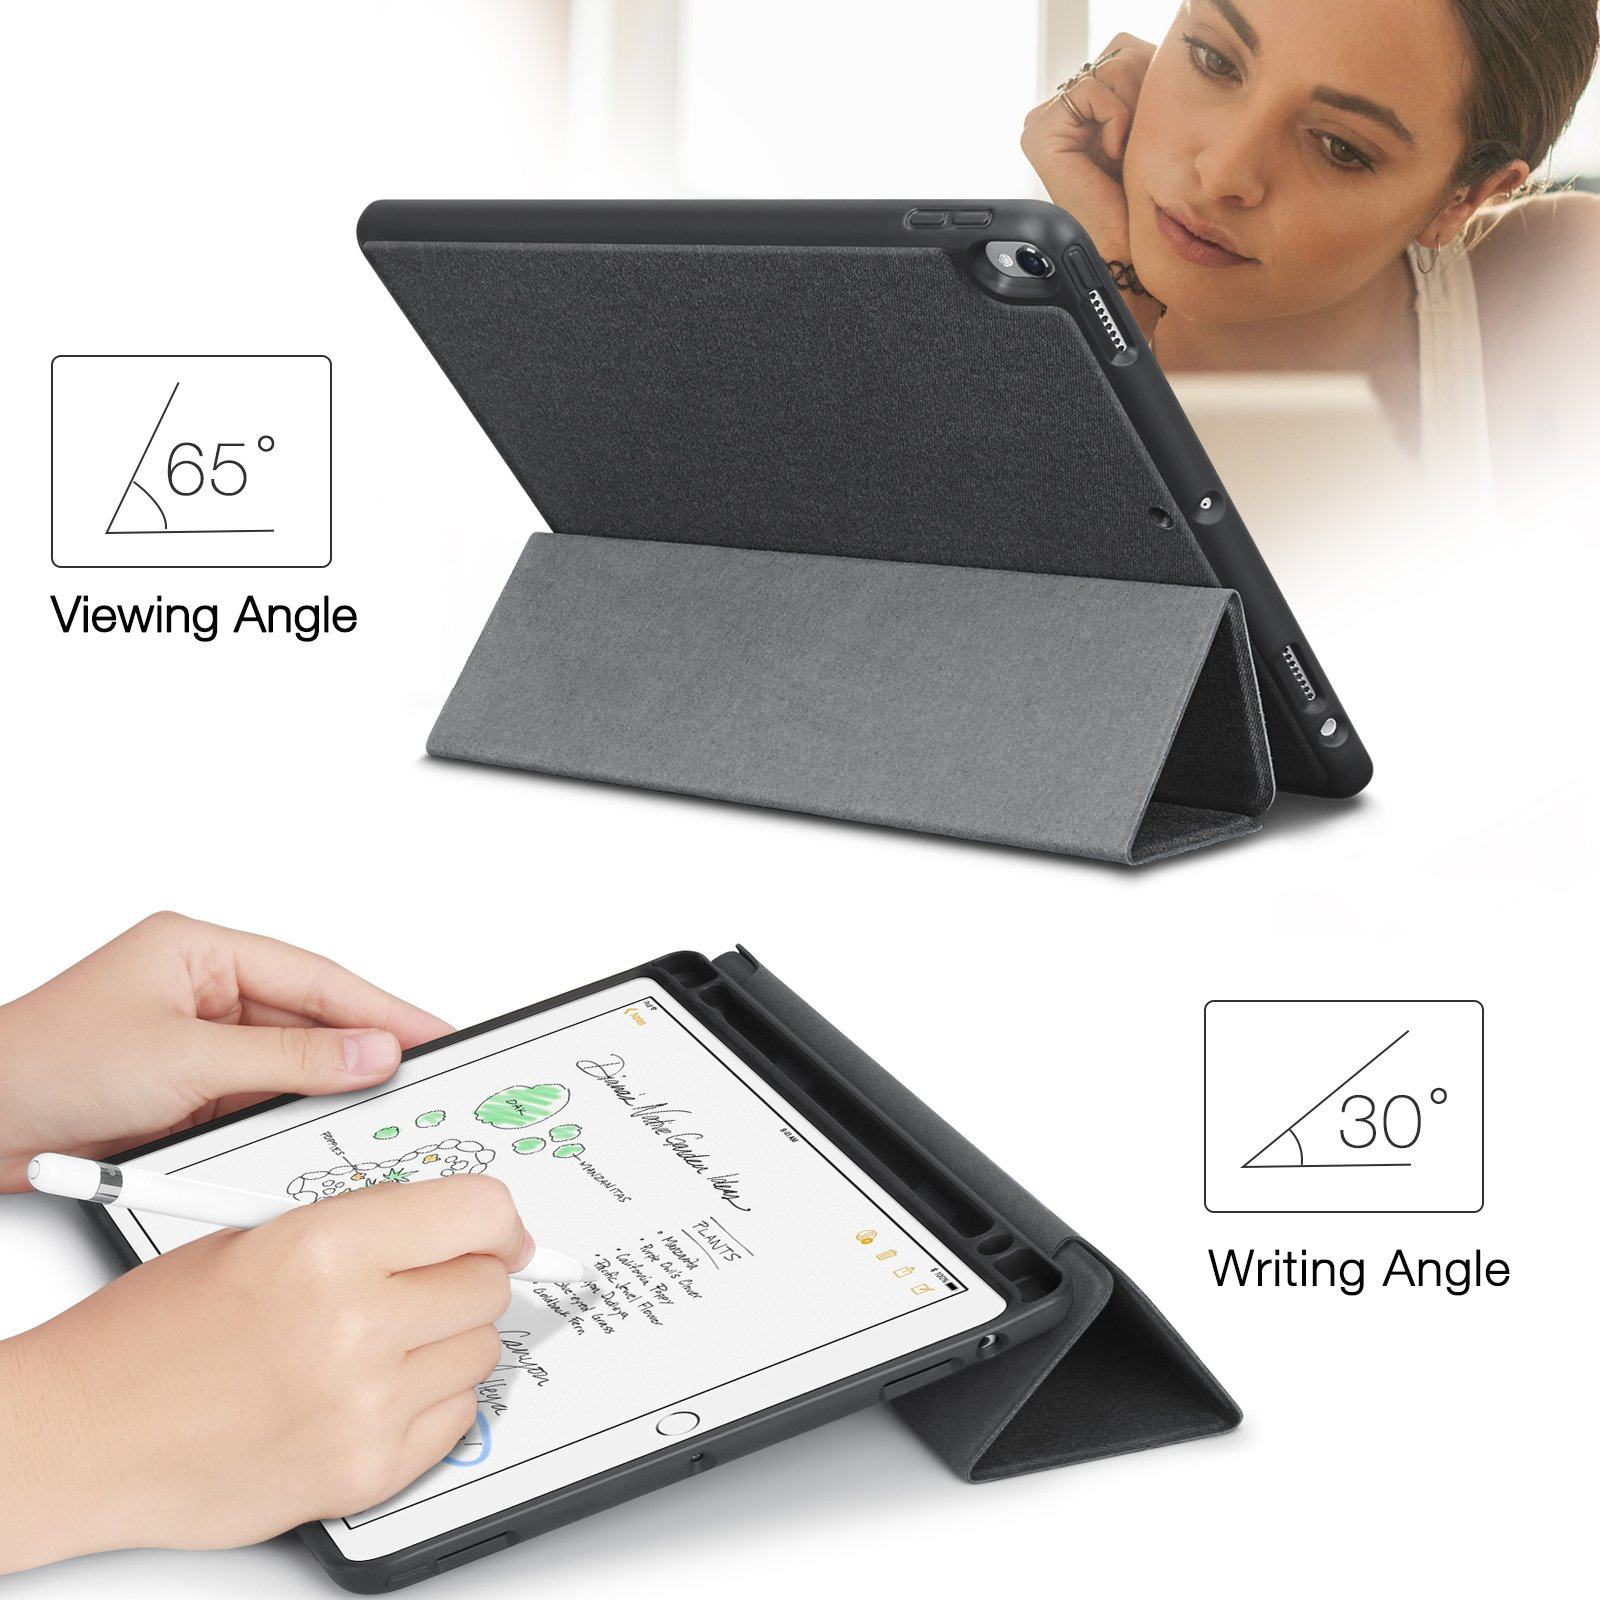 iVAPO iPad Pro 10.5 Case Pencil Holder Auto Sleep Wake Function Typing Viewing Tri-fold Stand PU Leather Smart Cover for iPad Pro 10.5 inch 2017 Black Denim Leather by iVAPO (Image #7)